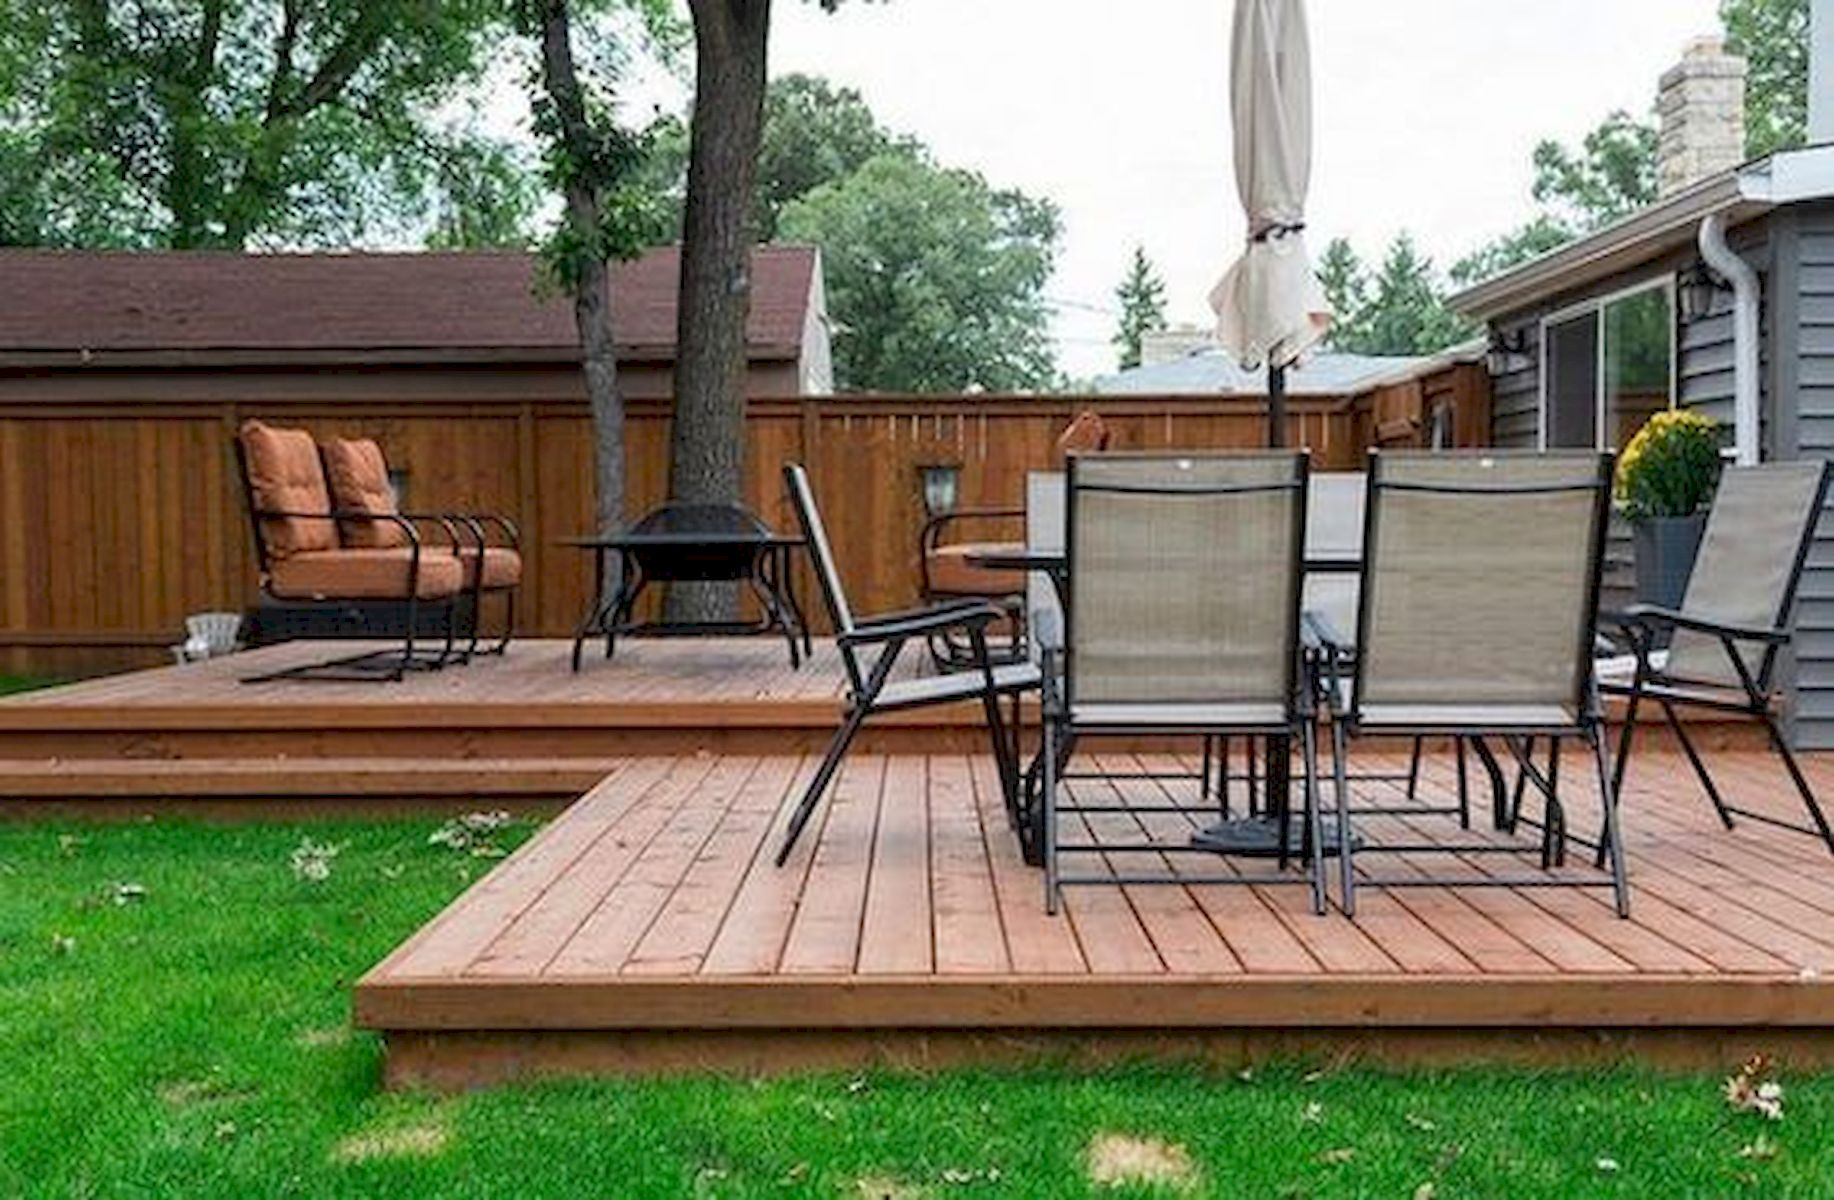 50 Fantastic Backyard Patio and Decking Design Ideas (1)